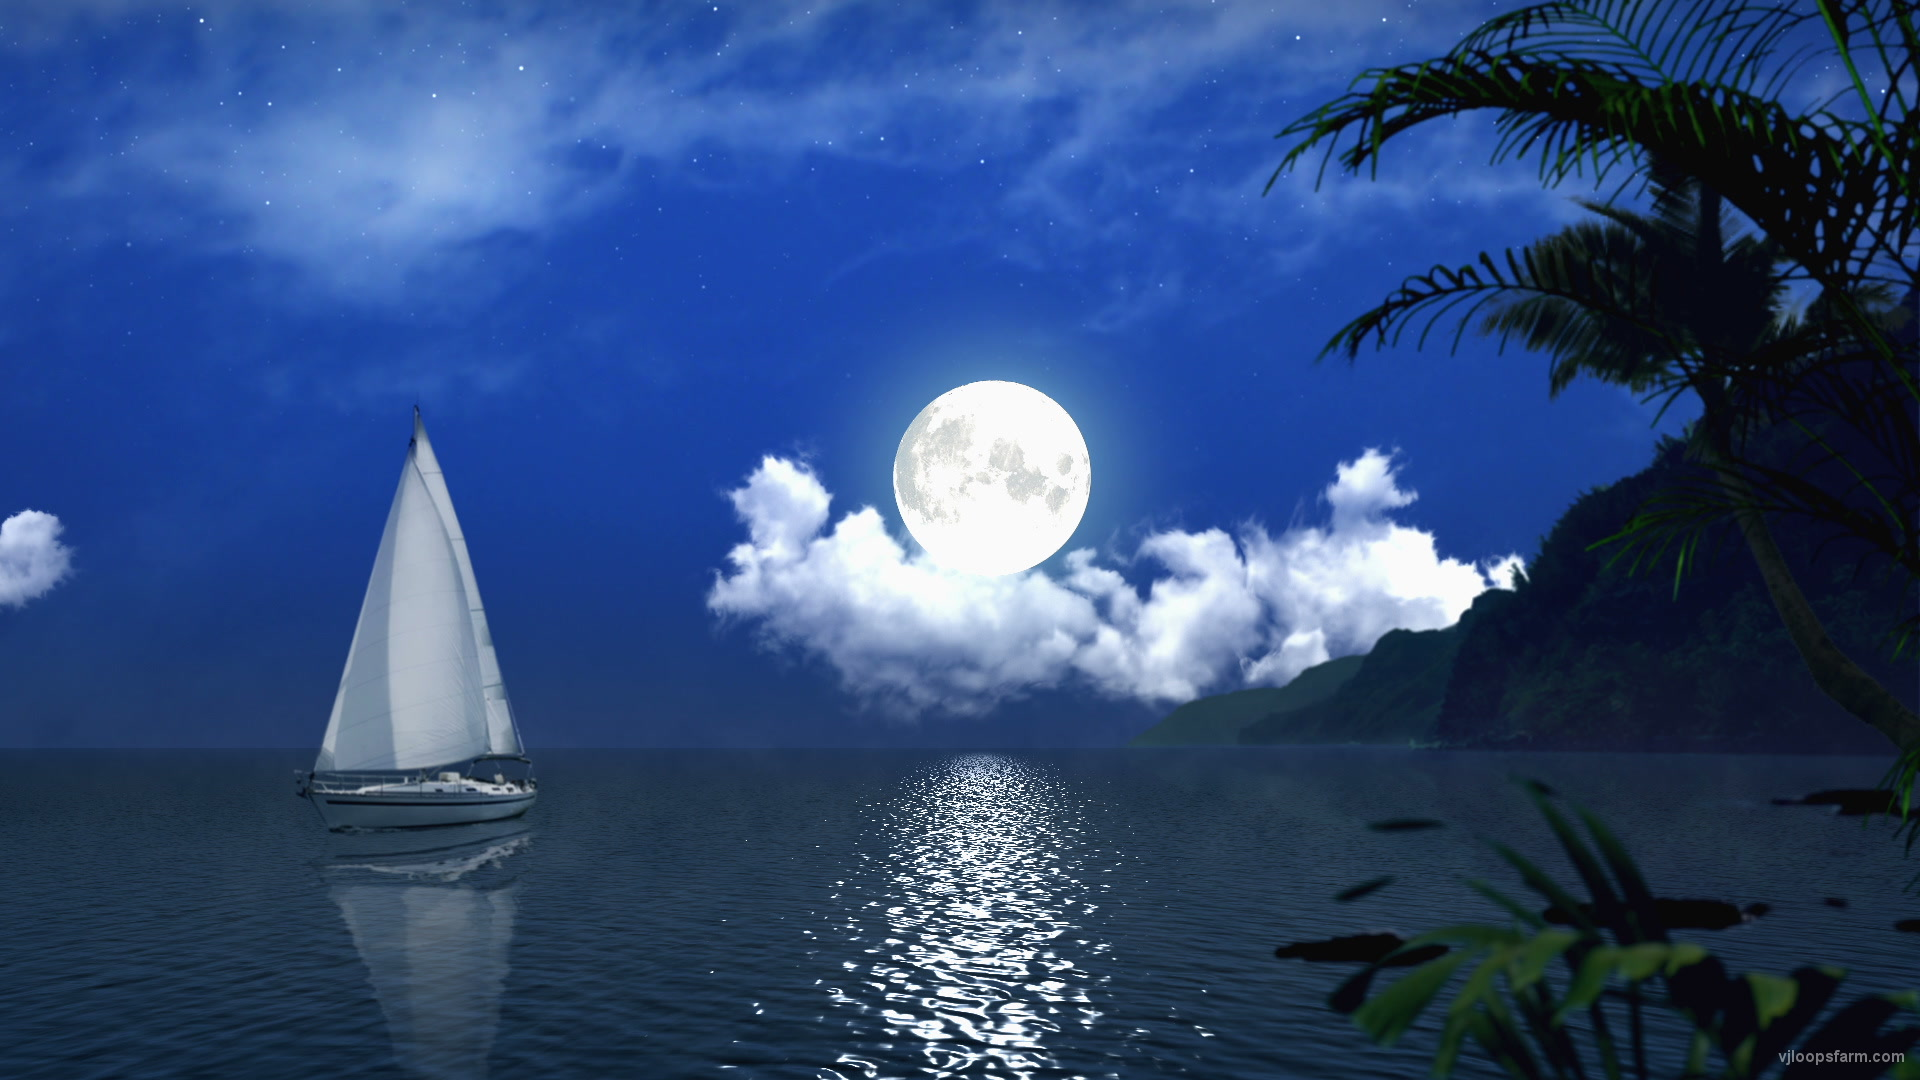 vj video background White-Sail-in-a-night_1920x1080_60fps_VJ_Loops_LIMEART_003